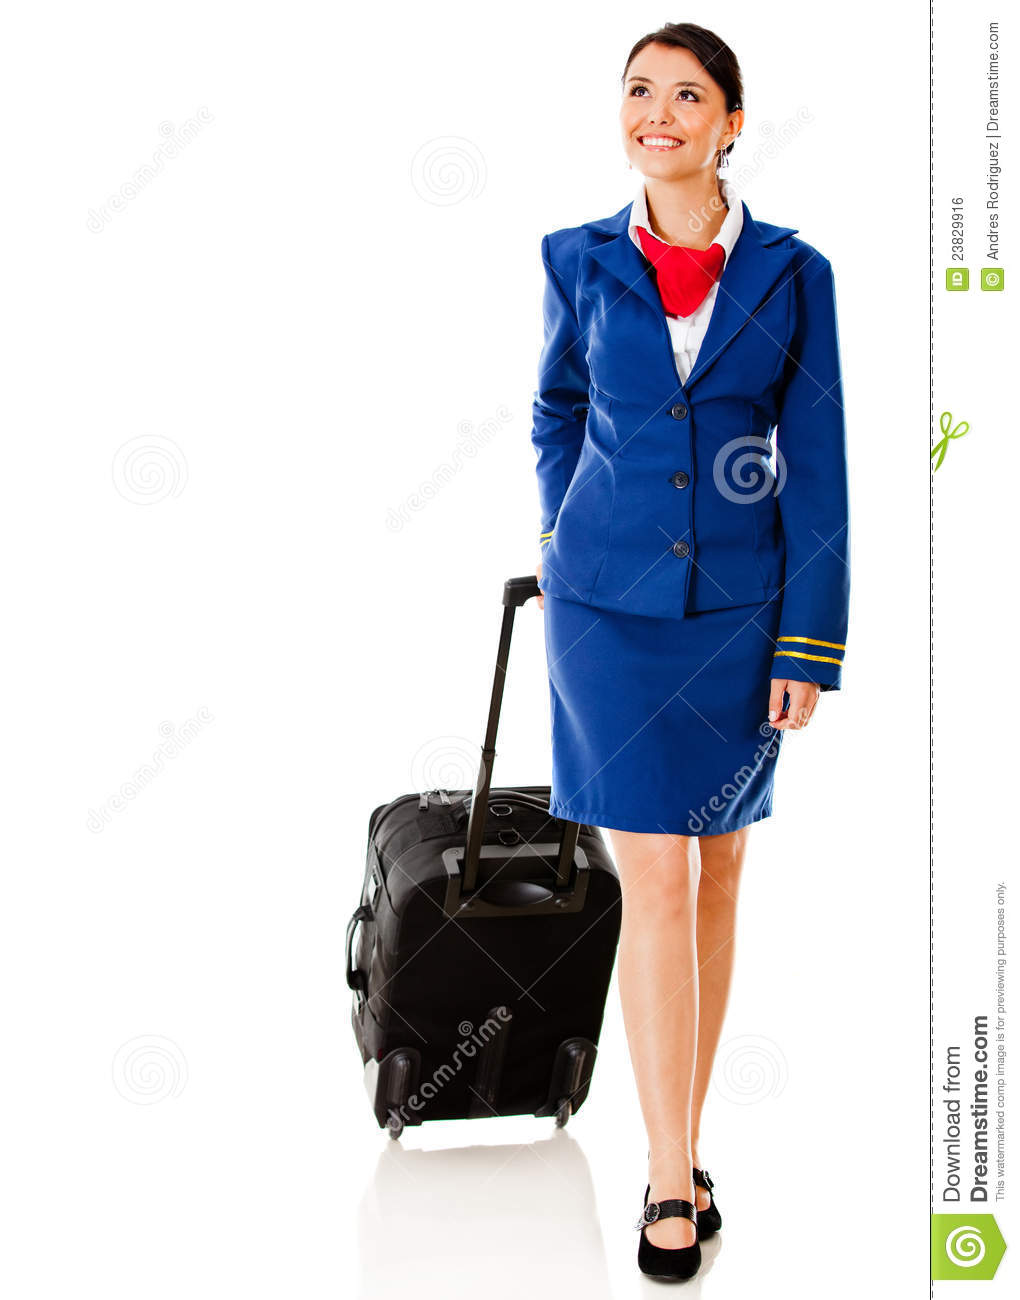 Raf Police Reserve Deploy Final Op Herrick together with Chappy lb50ii additionally Autovent further Royalty Free Stock Image Air Hostess Bag Image23829916 moreover Racing ty250. on air handler